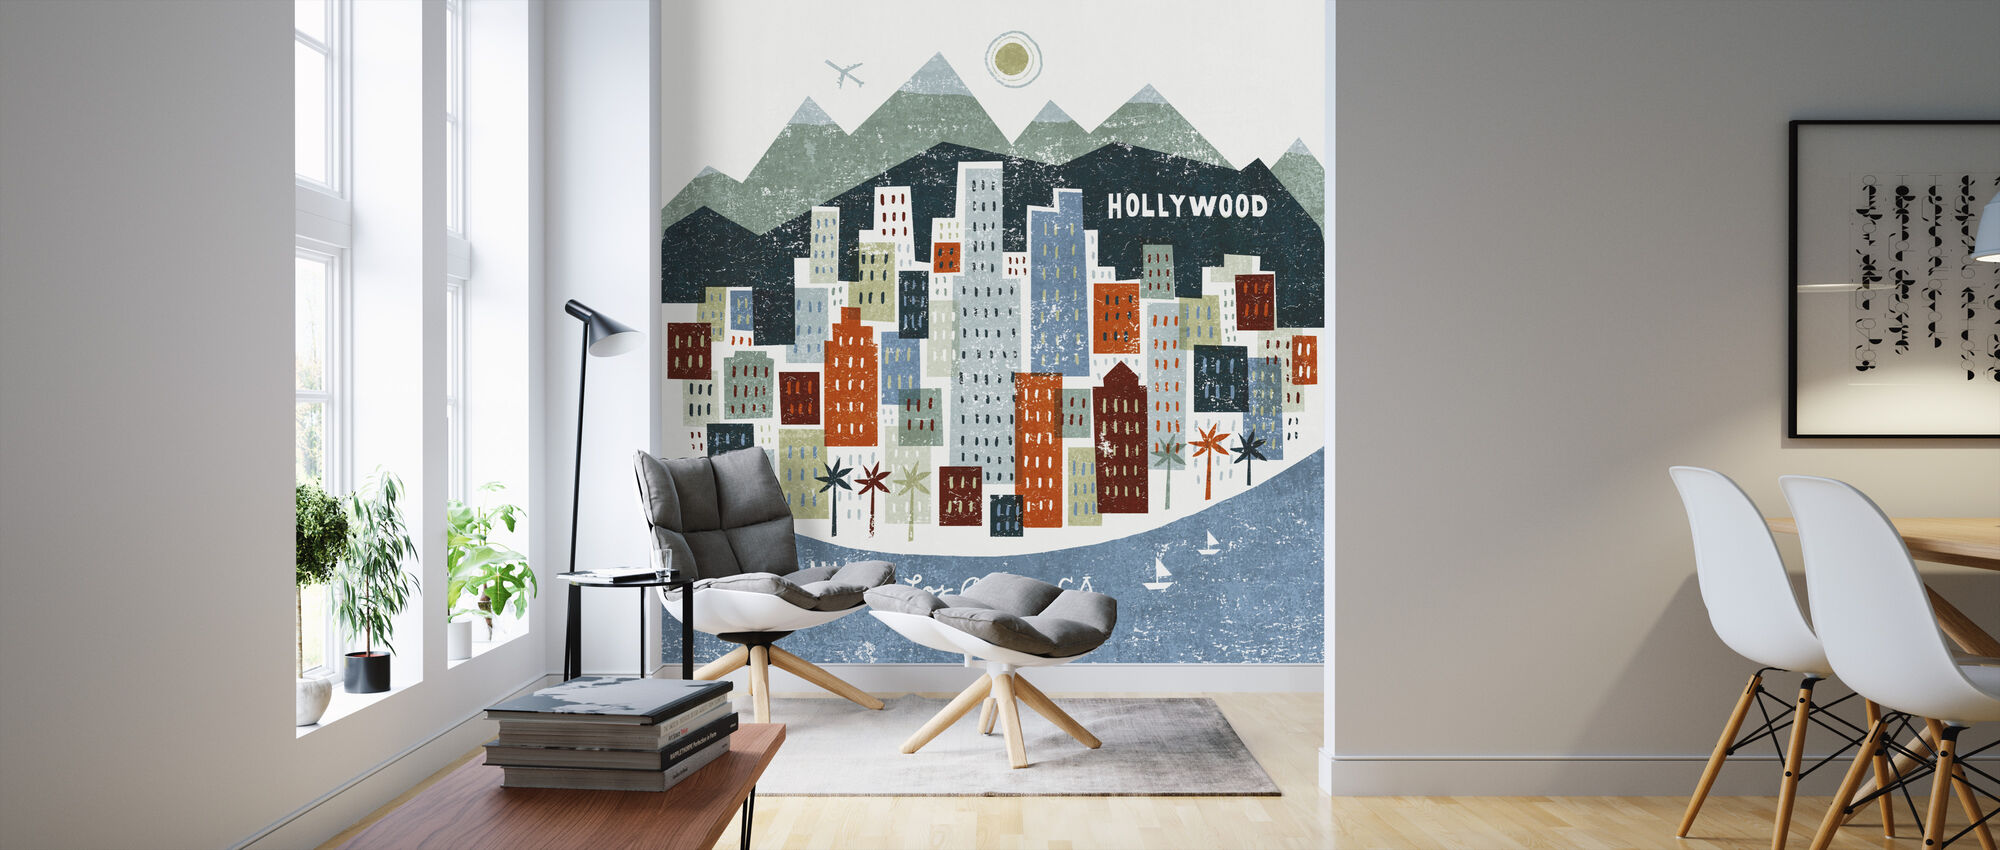 Colorful Los Angeles - Wallpaper - Living Room